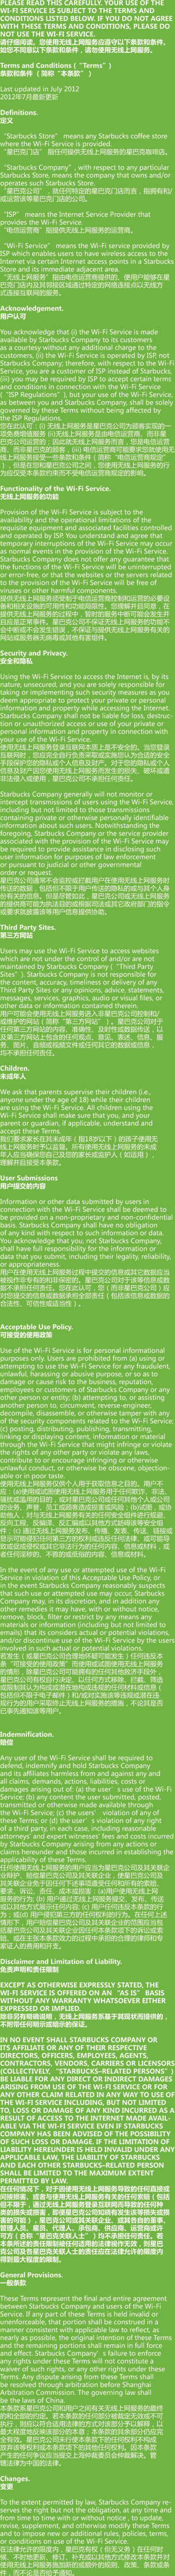 Starbucks Shenzhen (Hai An Cheng) Wi-Fi Terms of Service, as of 2016-06-01